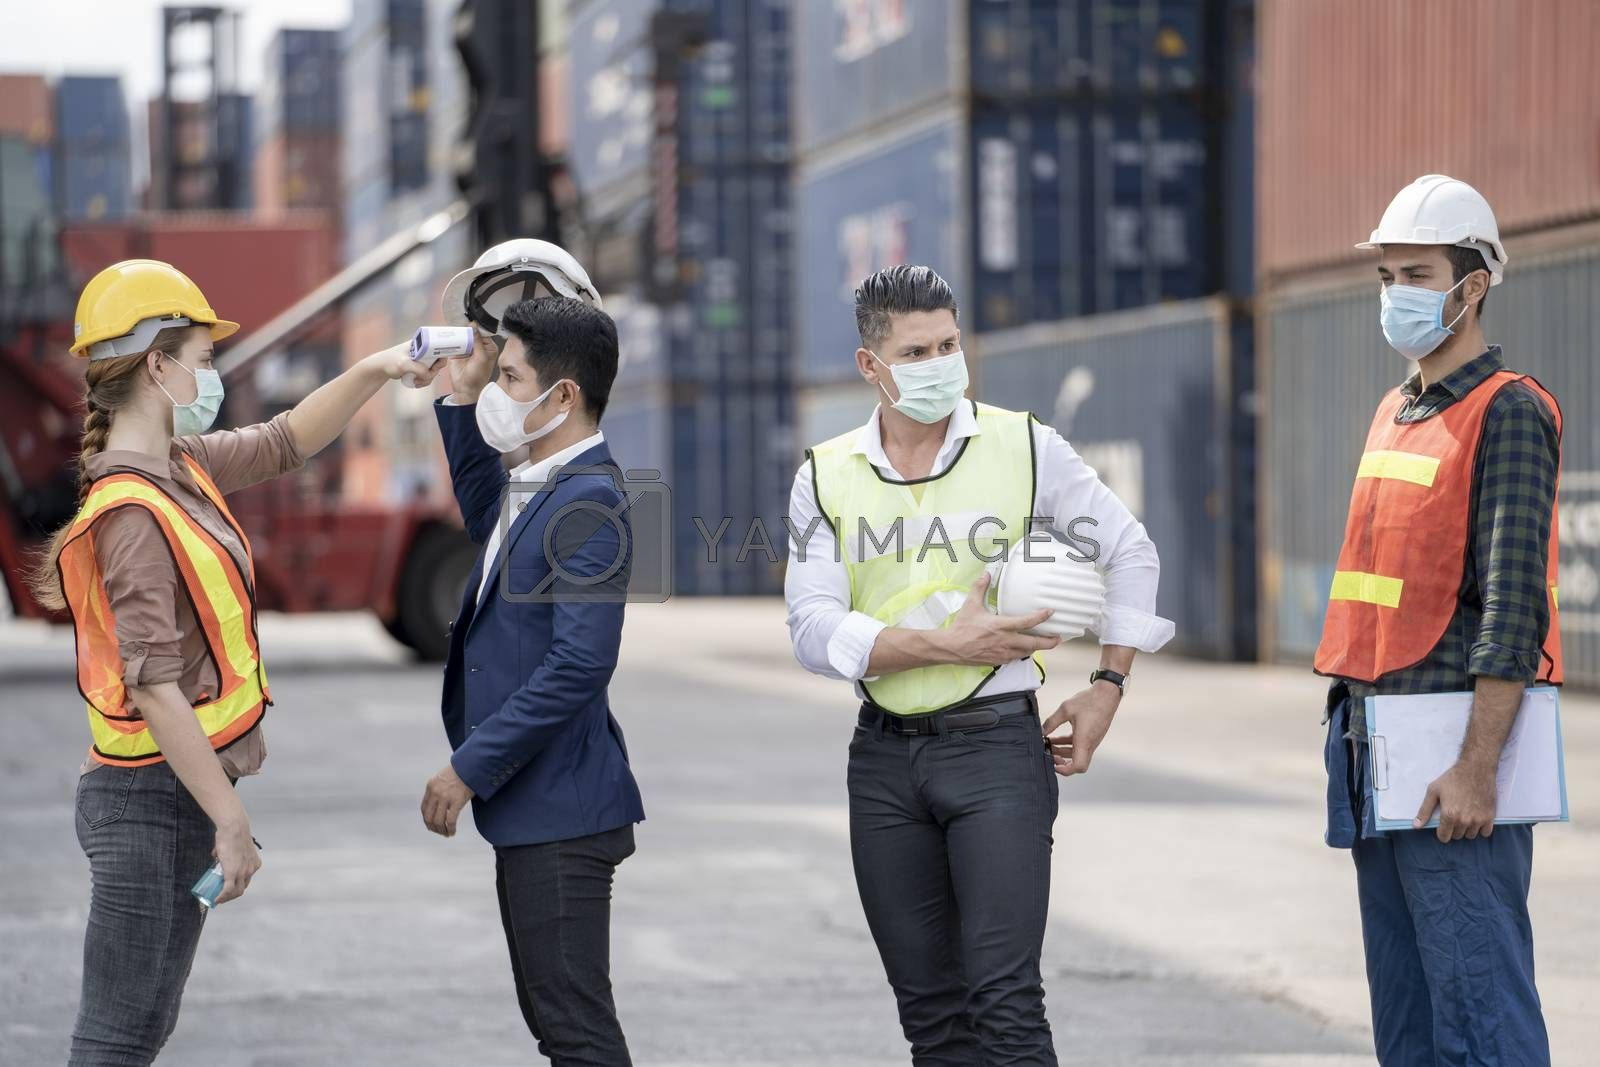 Factory woman worker in a face medical mask and safety dress used measures temperature at worker people standing on queue with a non-contact infrared thermometer.